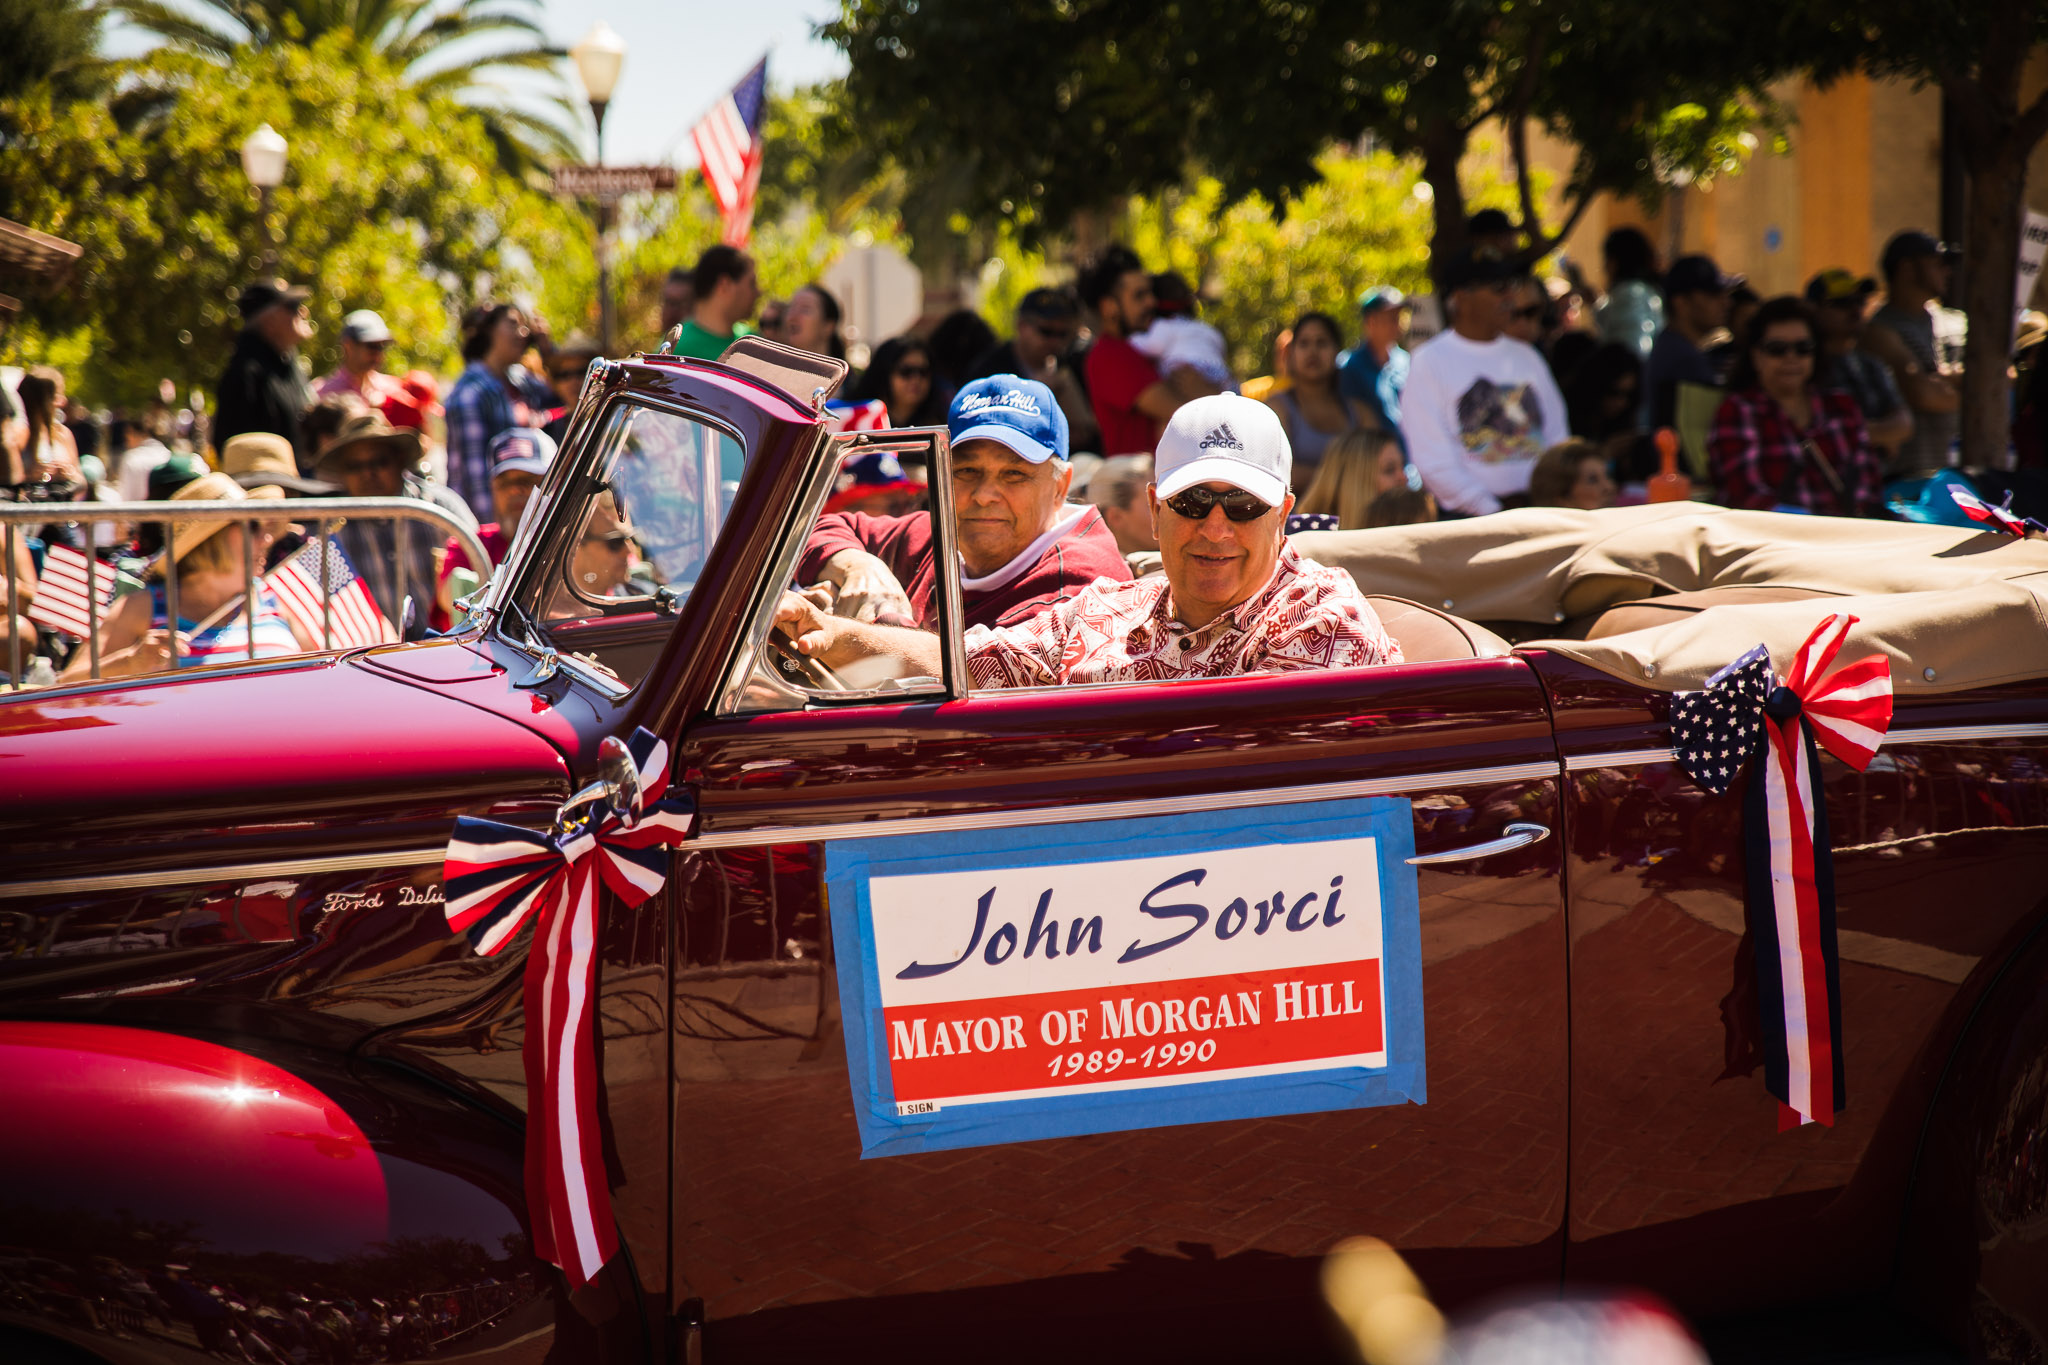 Archer_Inspired_Photography_Morgan_Hill_California_4th_of_july_parade-116.jpg